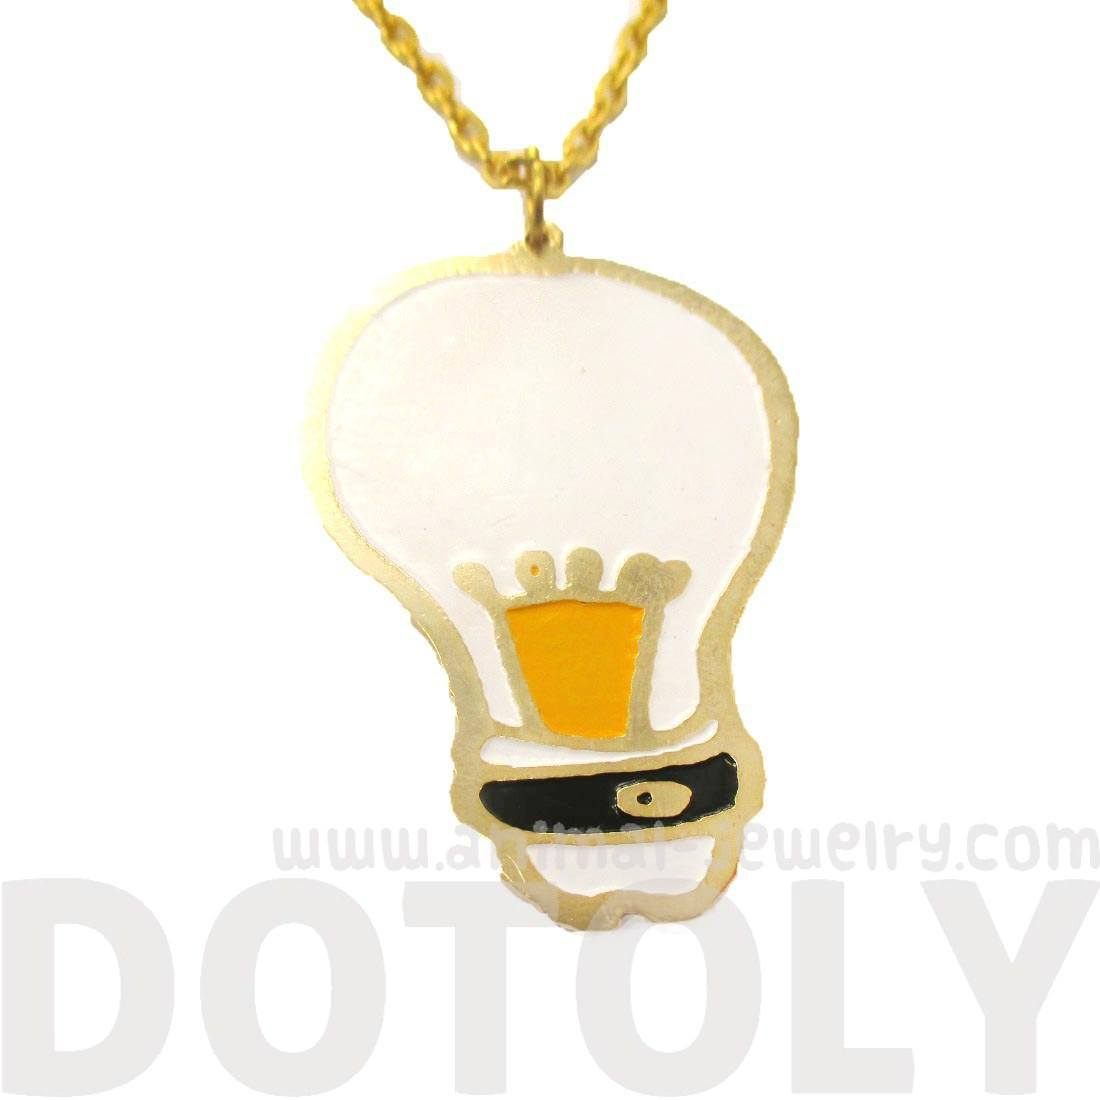 Bright Ideas Light Bulb Icon Shaped Pendant Necklace | Limited Edition